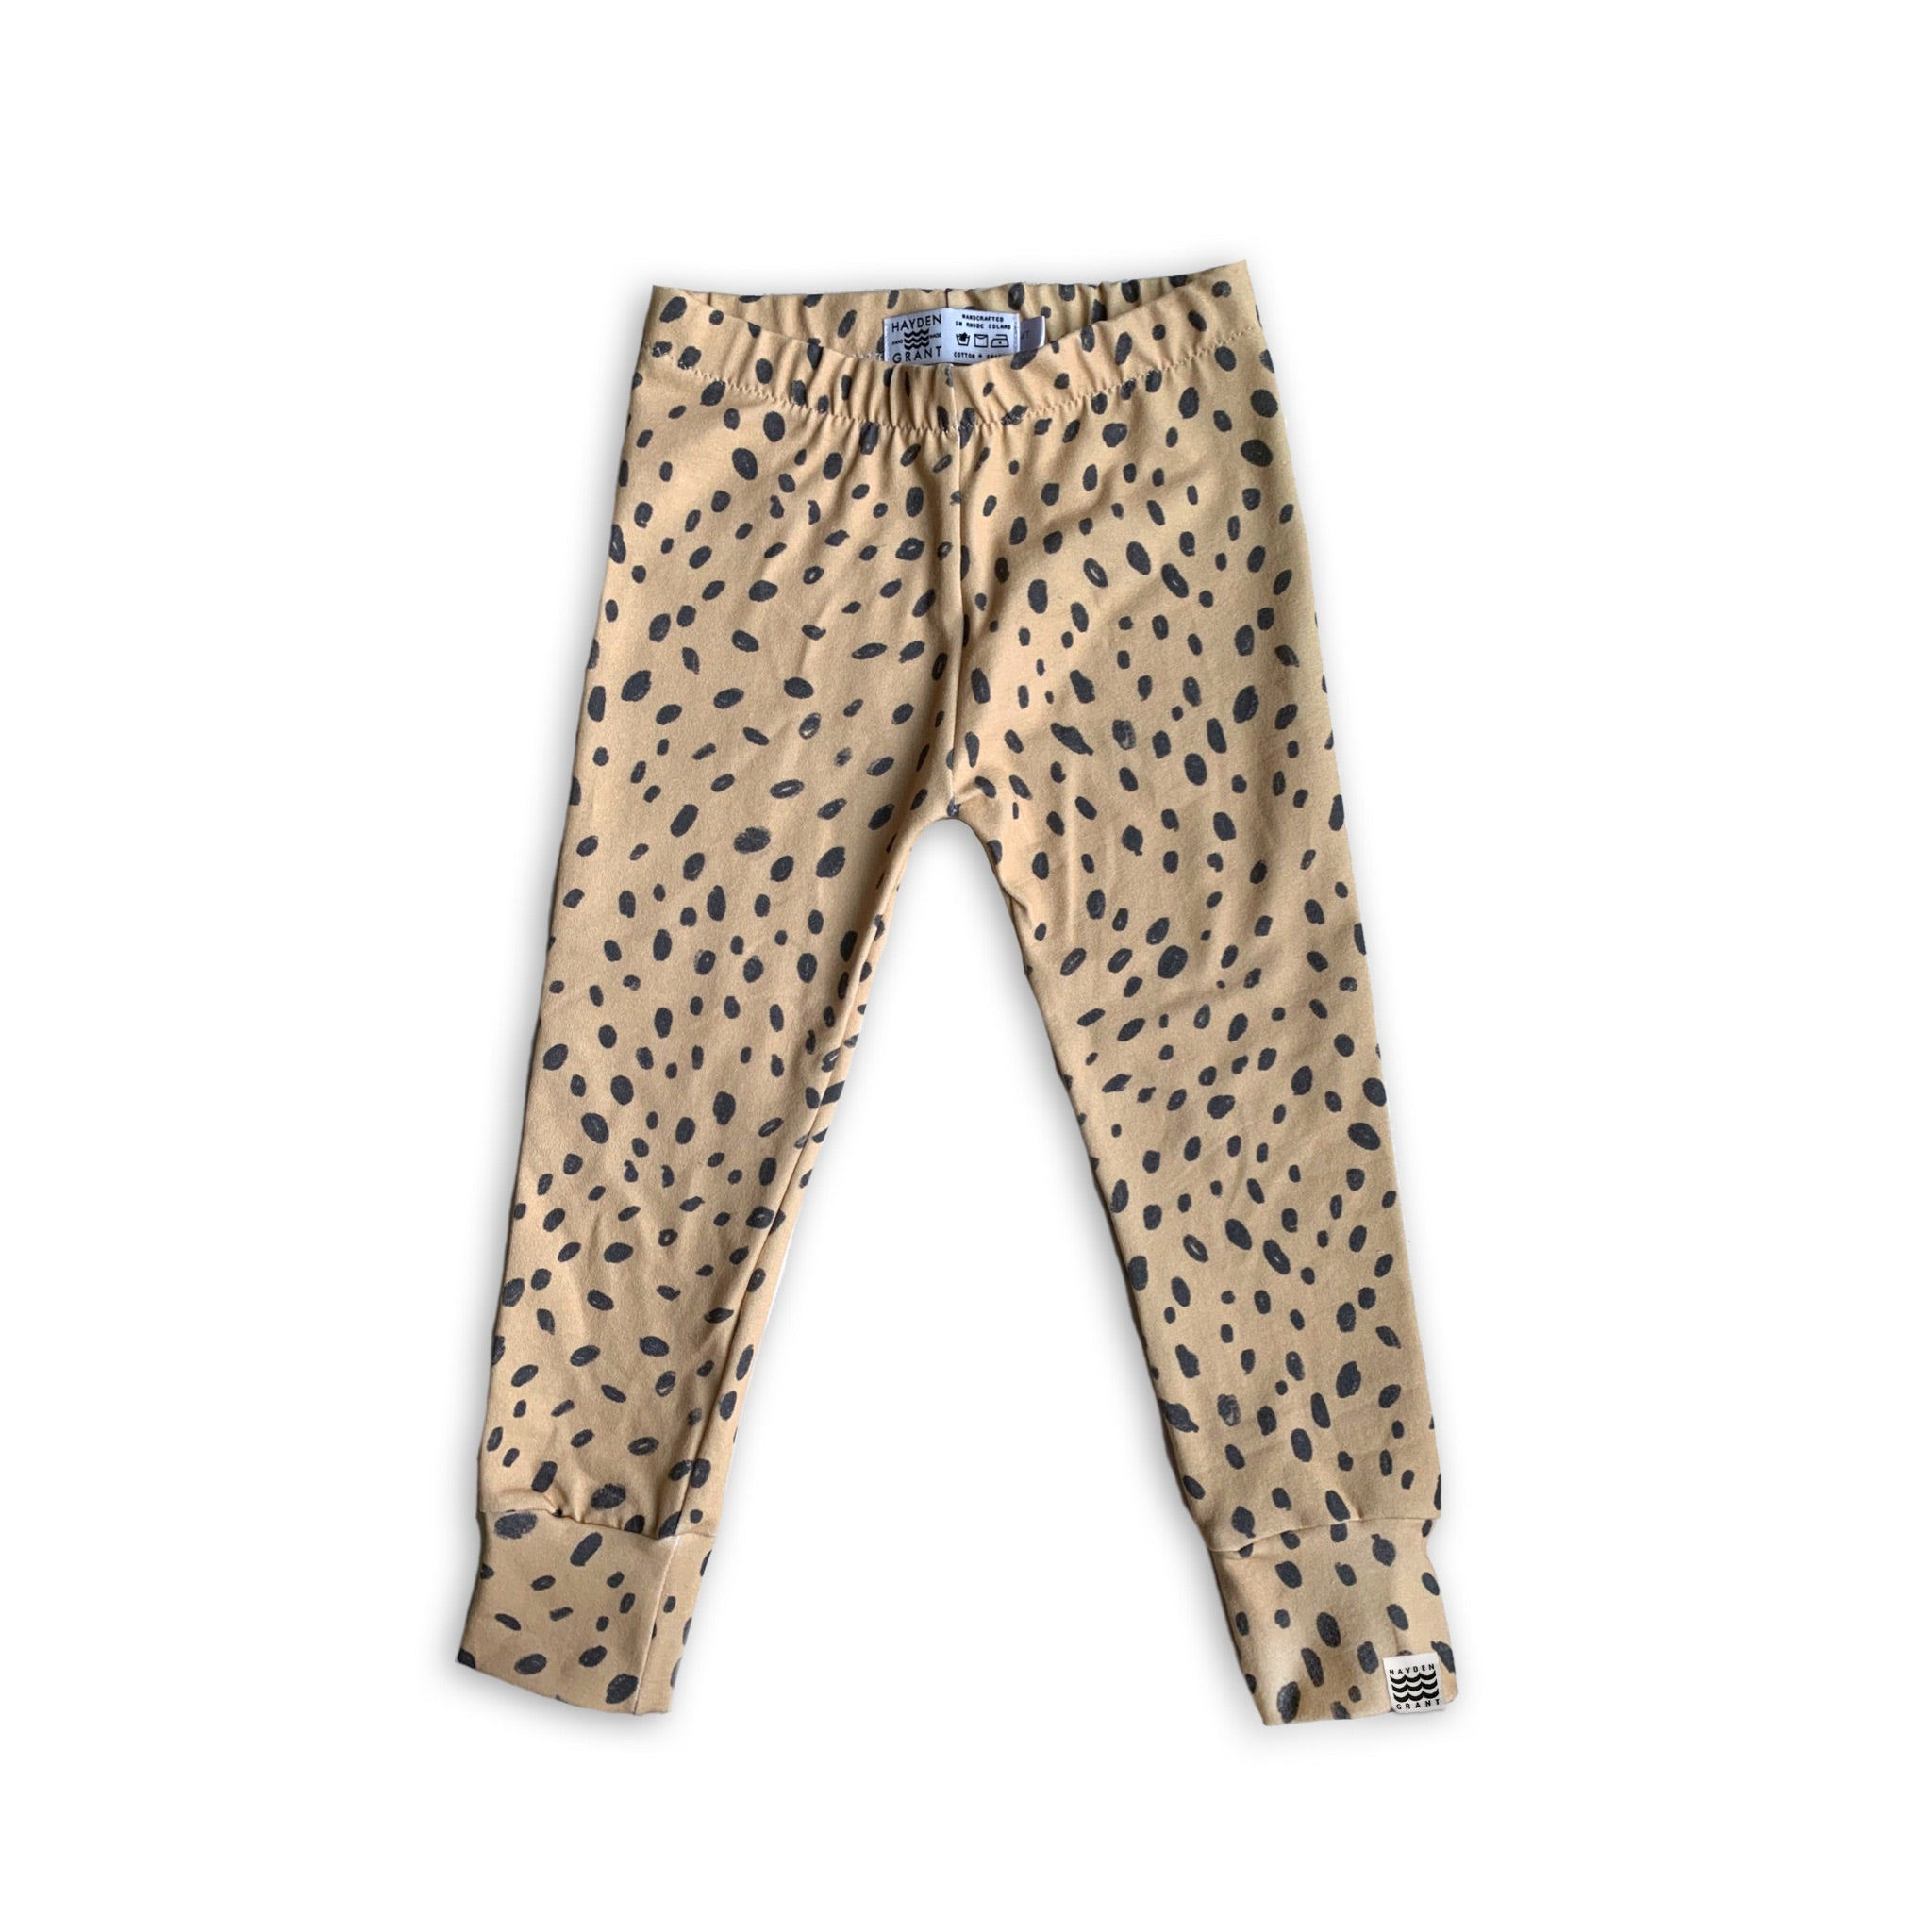 Limited Edition Slim Leggings in Cheetah